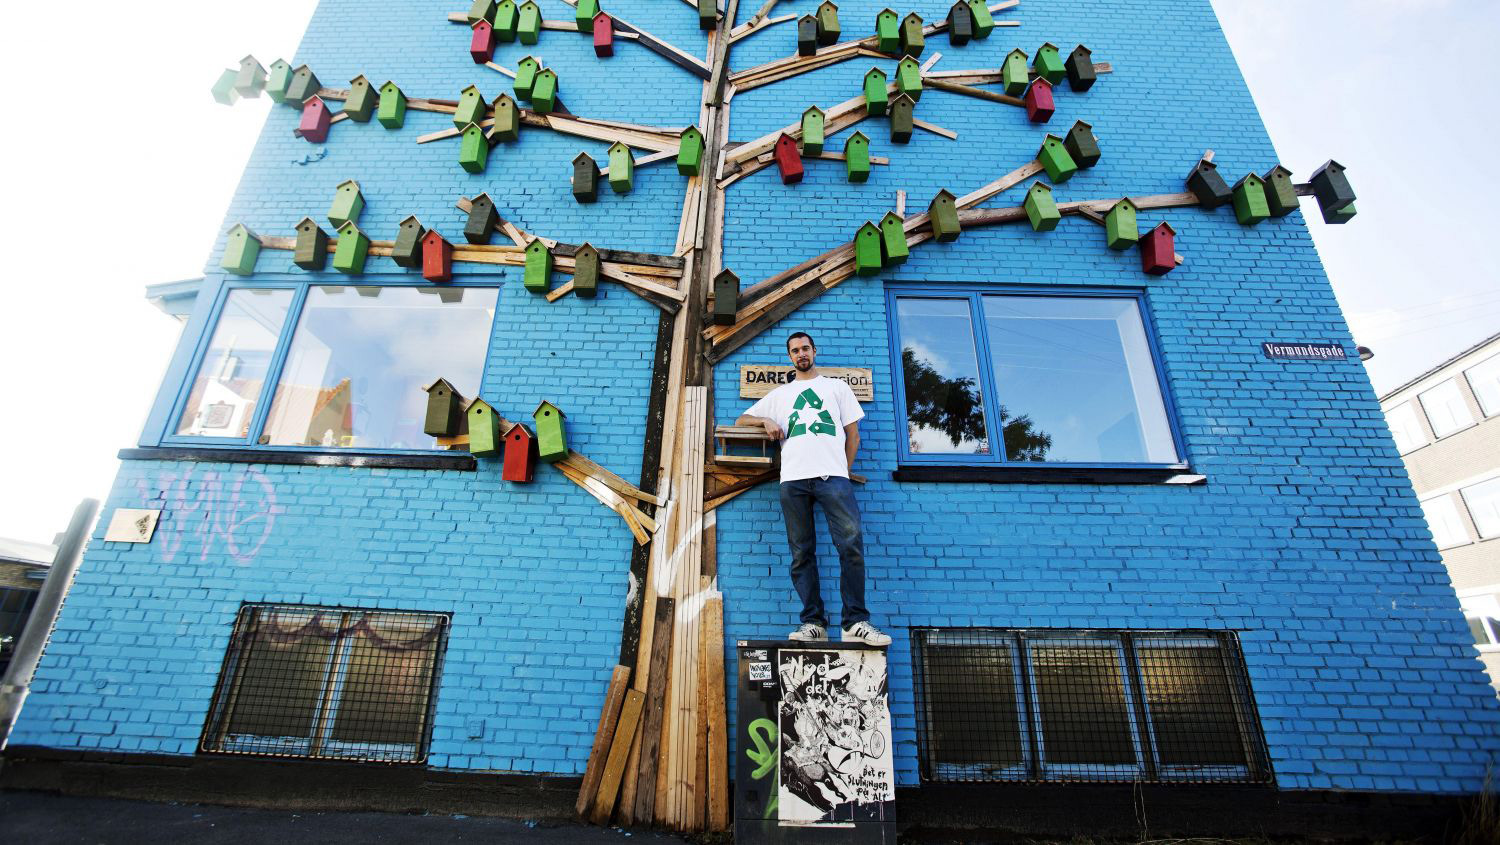 Artist and designer Thomas Dambo ( previously ) specializes in building family-friendly installatio